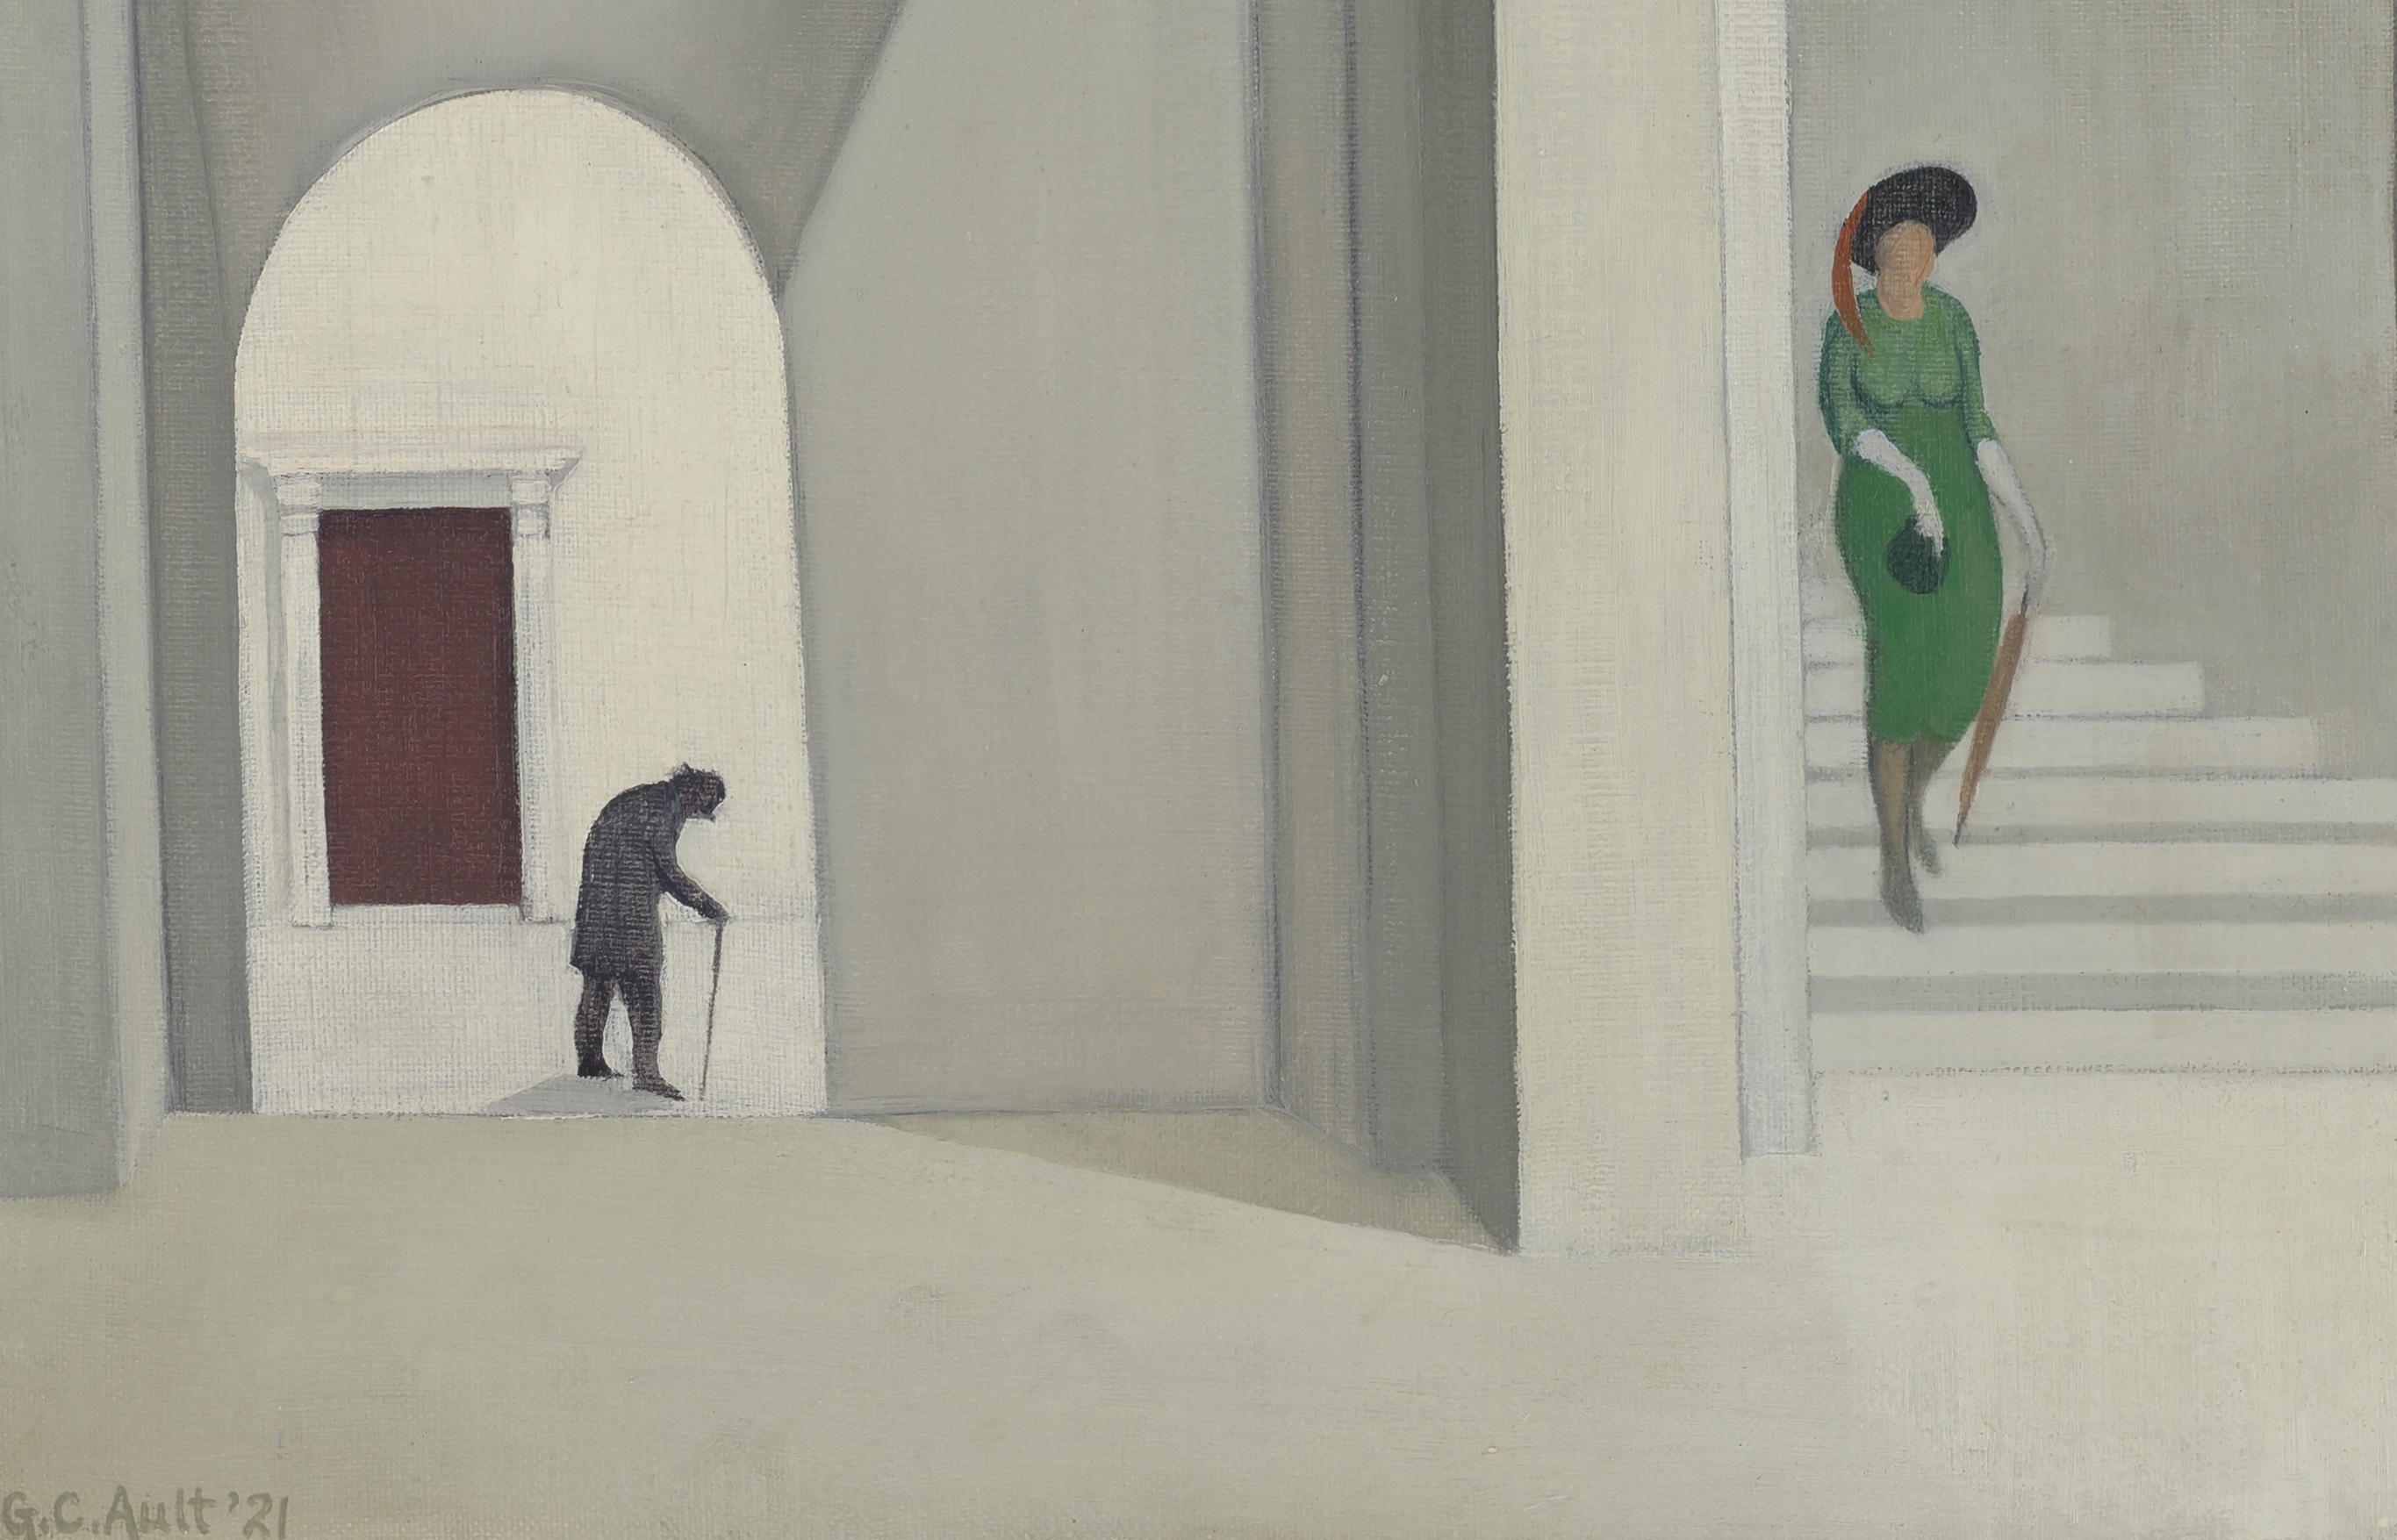 Detail of George Ault's painting of a woman in the green dress walking down a white stairway.